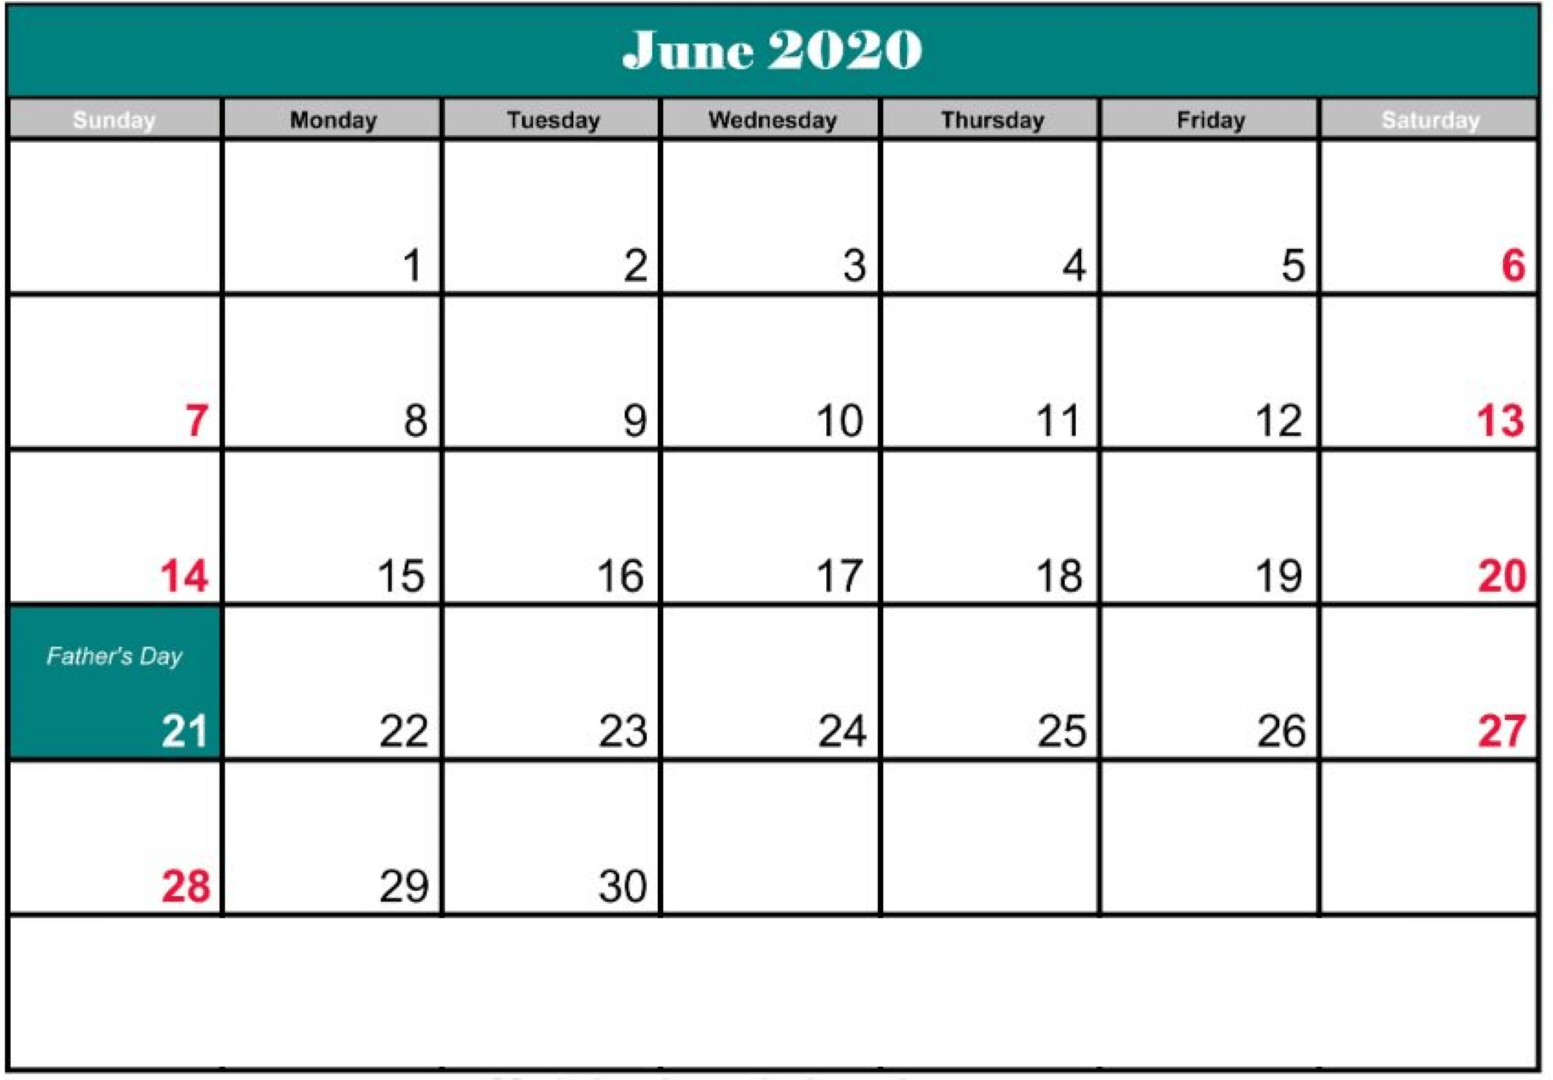 June 2020 black and white Calendar With Holidays